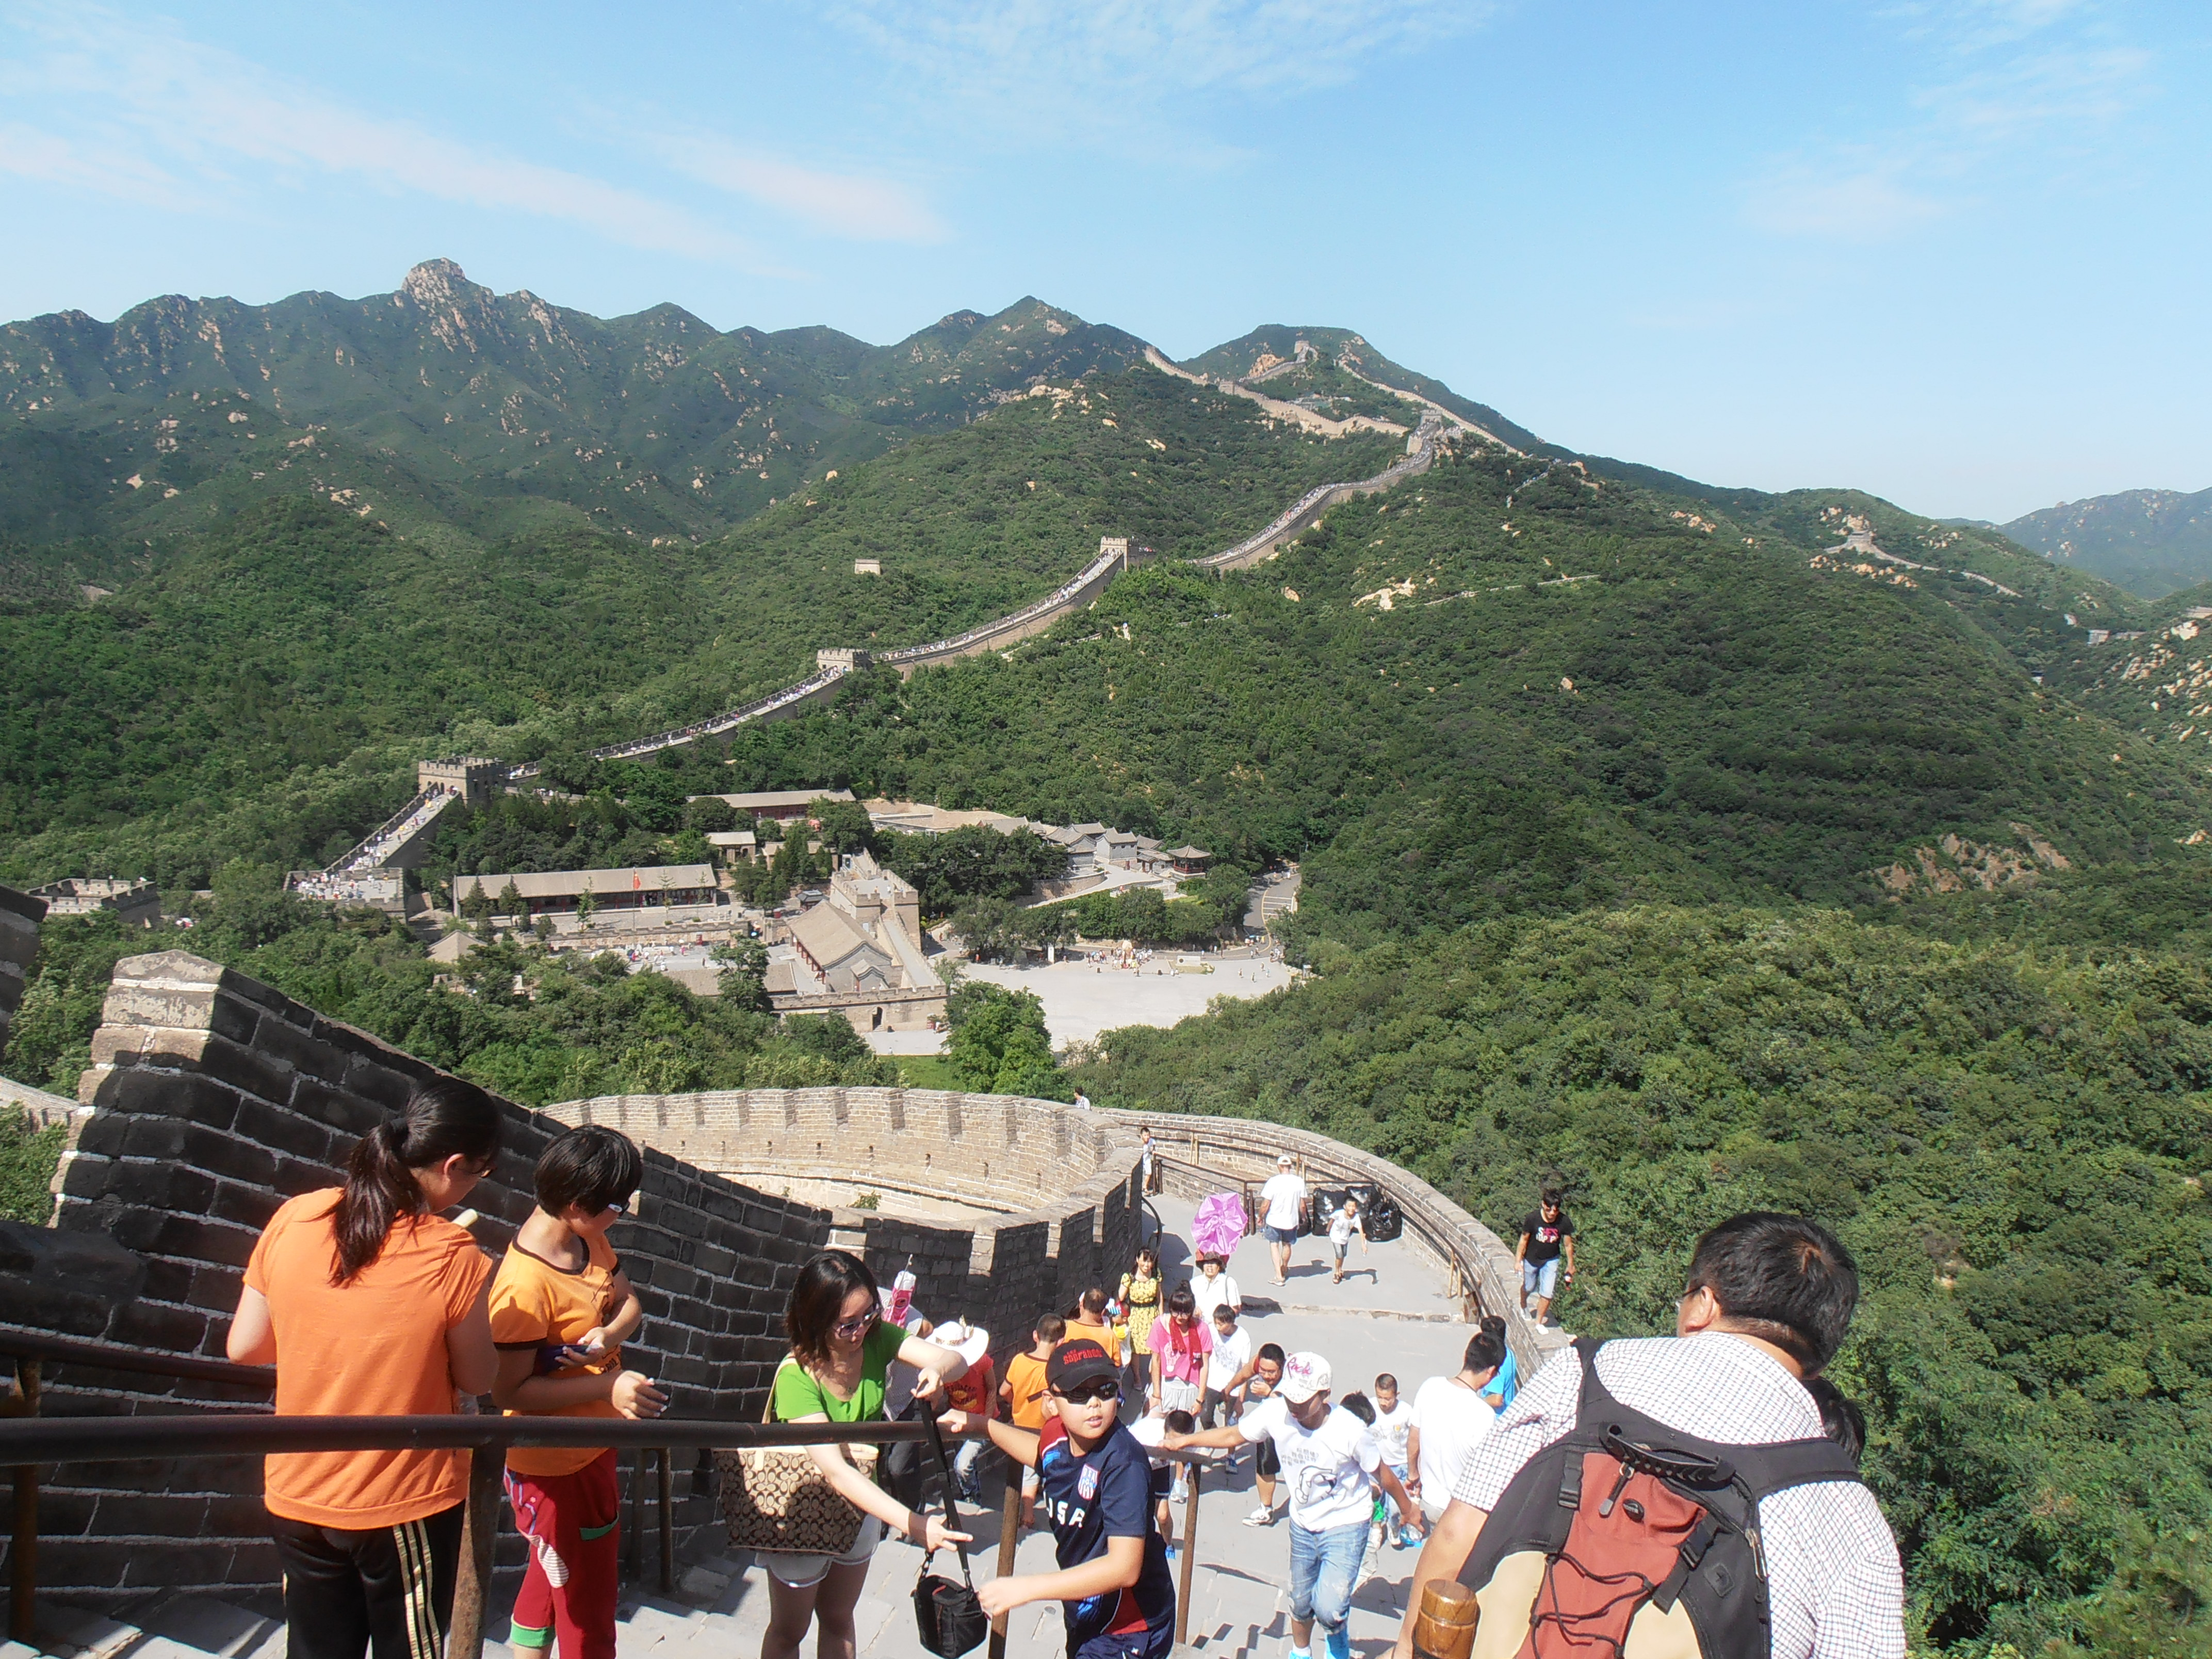 Beijing. Great wall. Badaling section